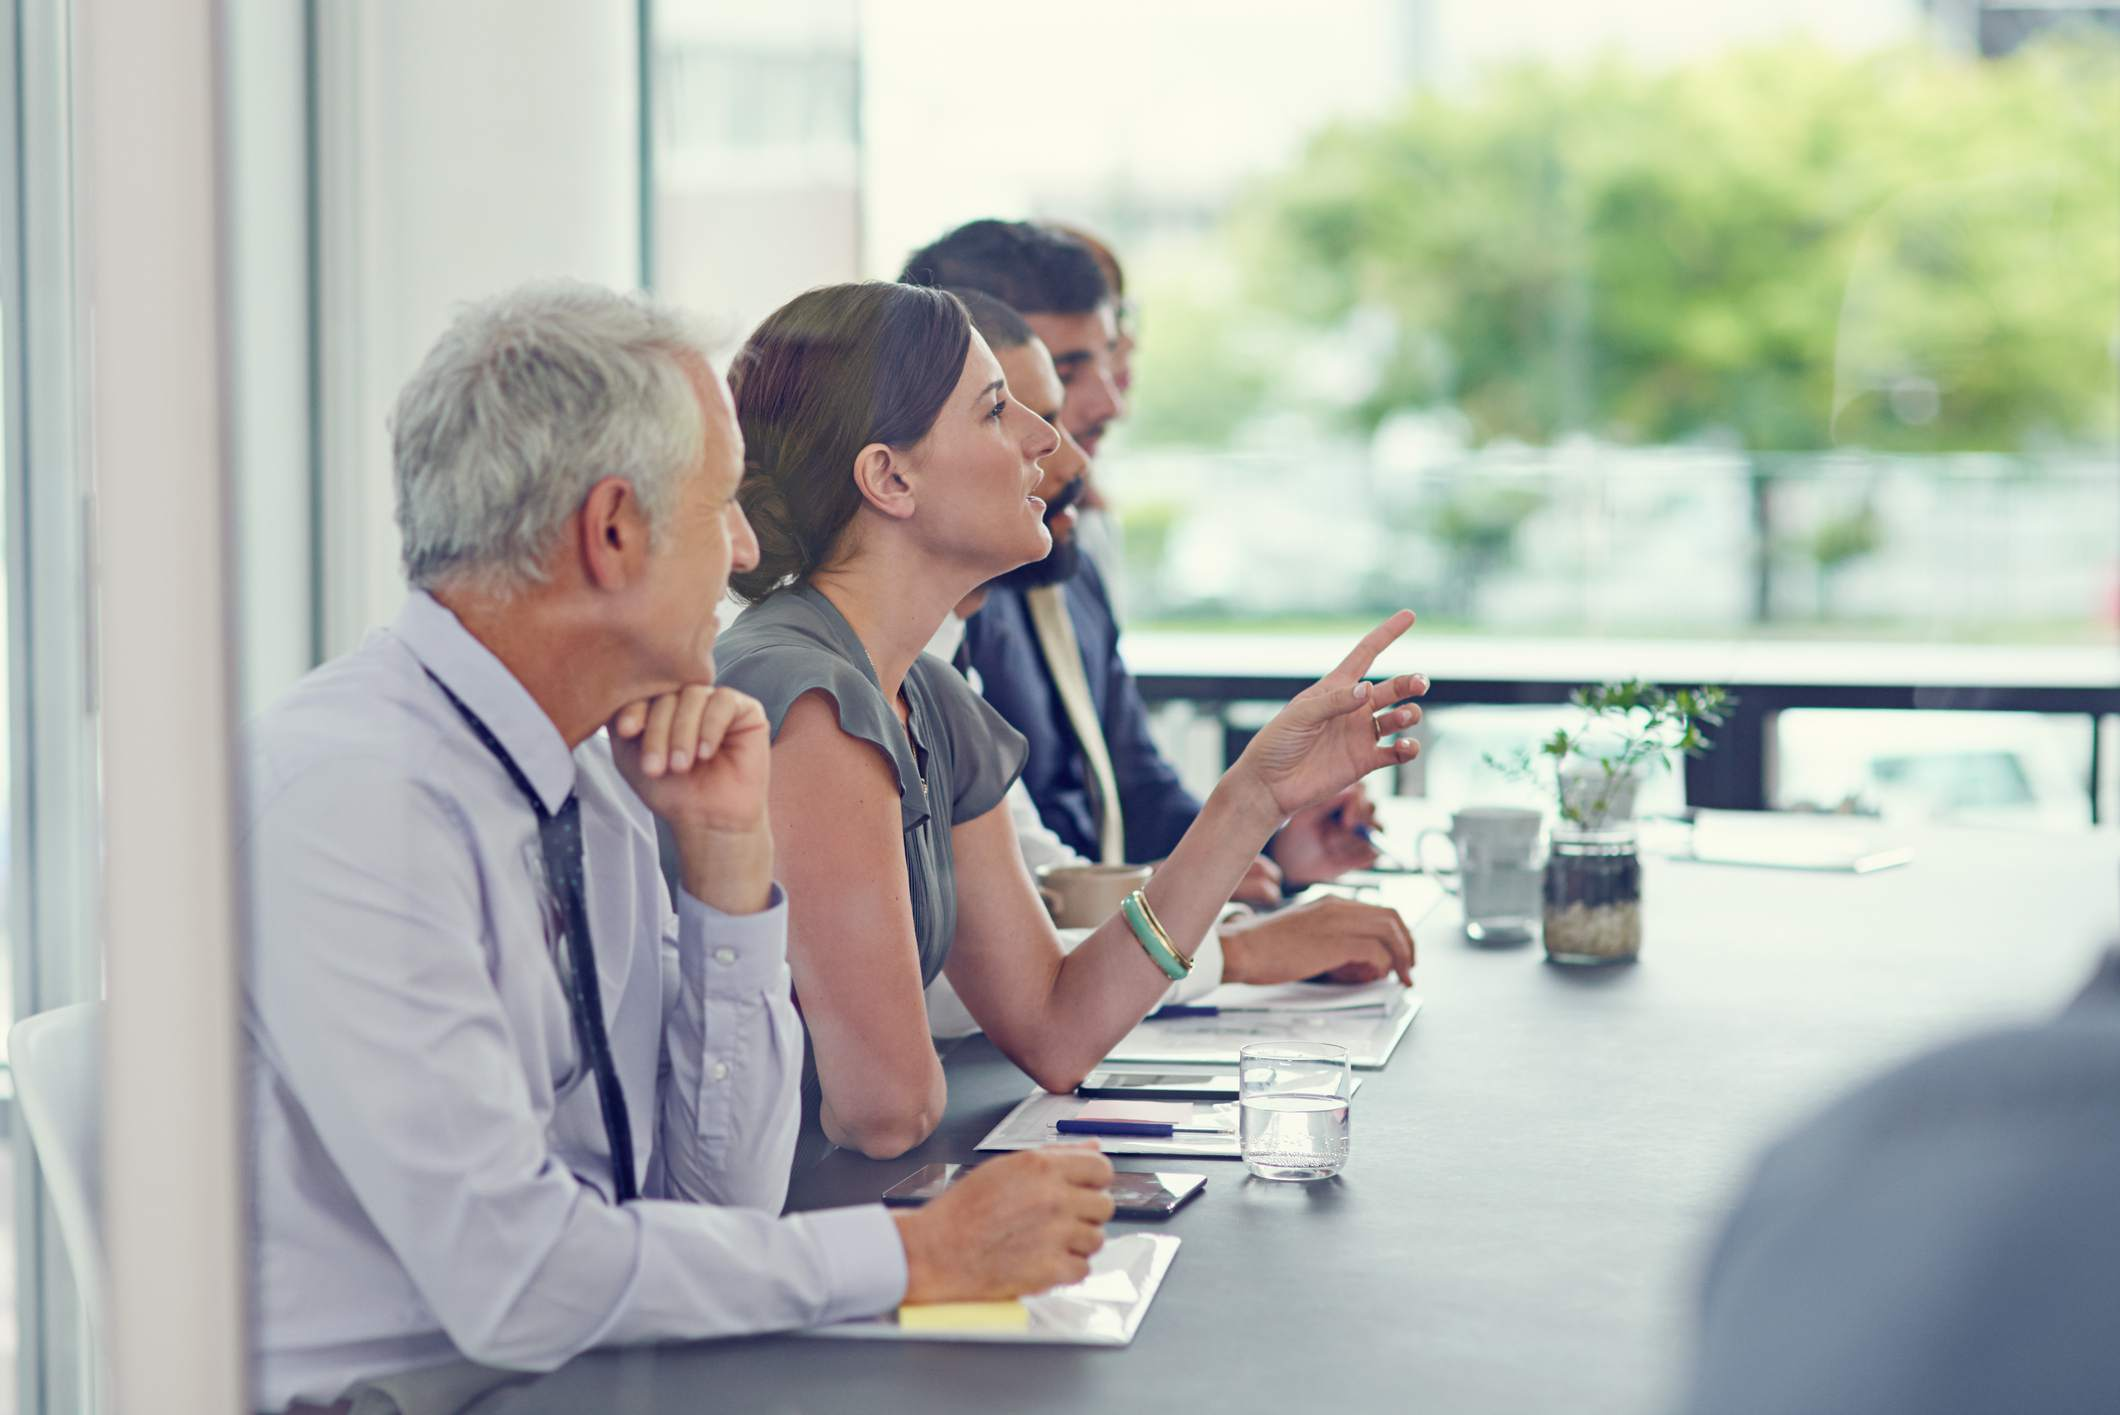 Group in conference room, woman talking in and pointing